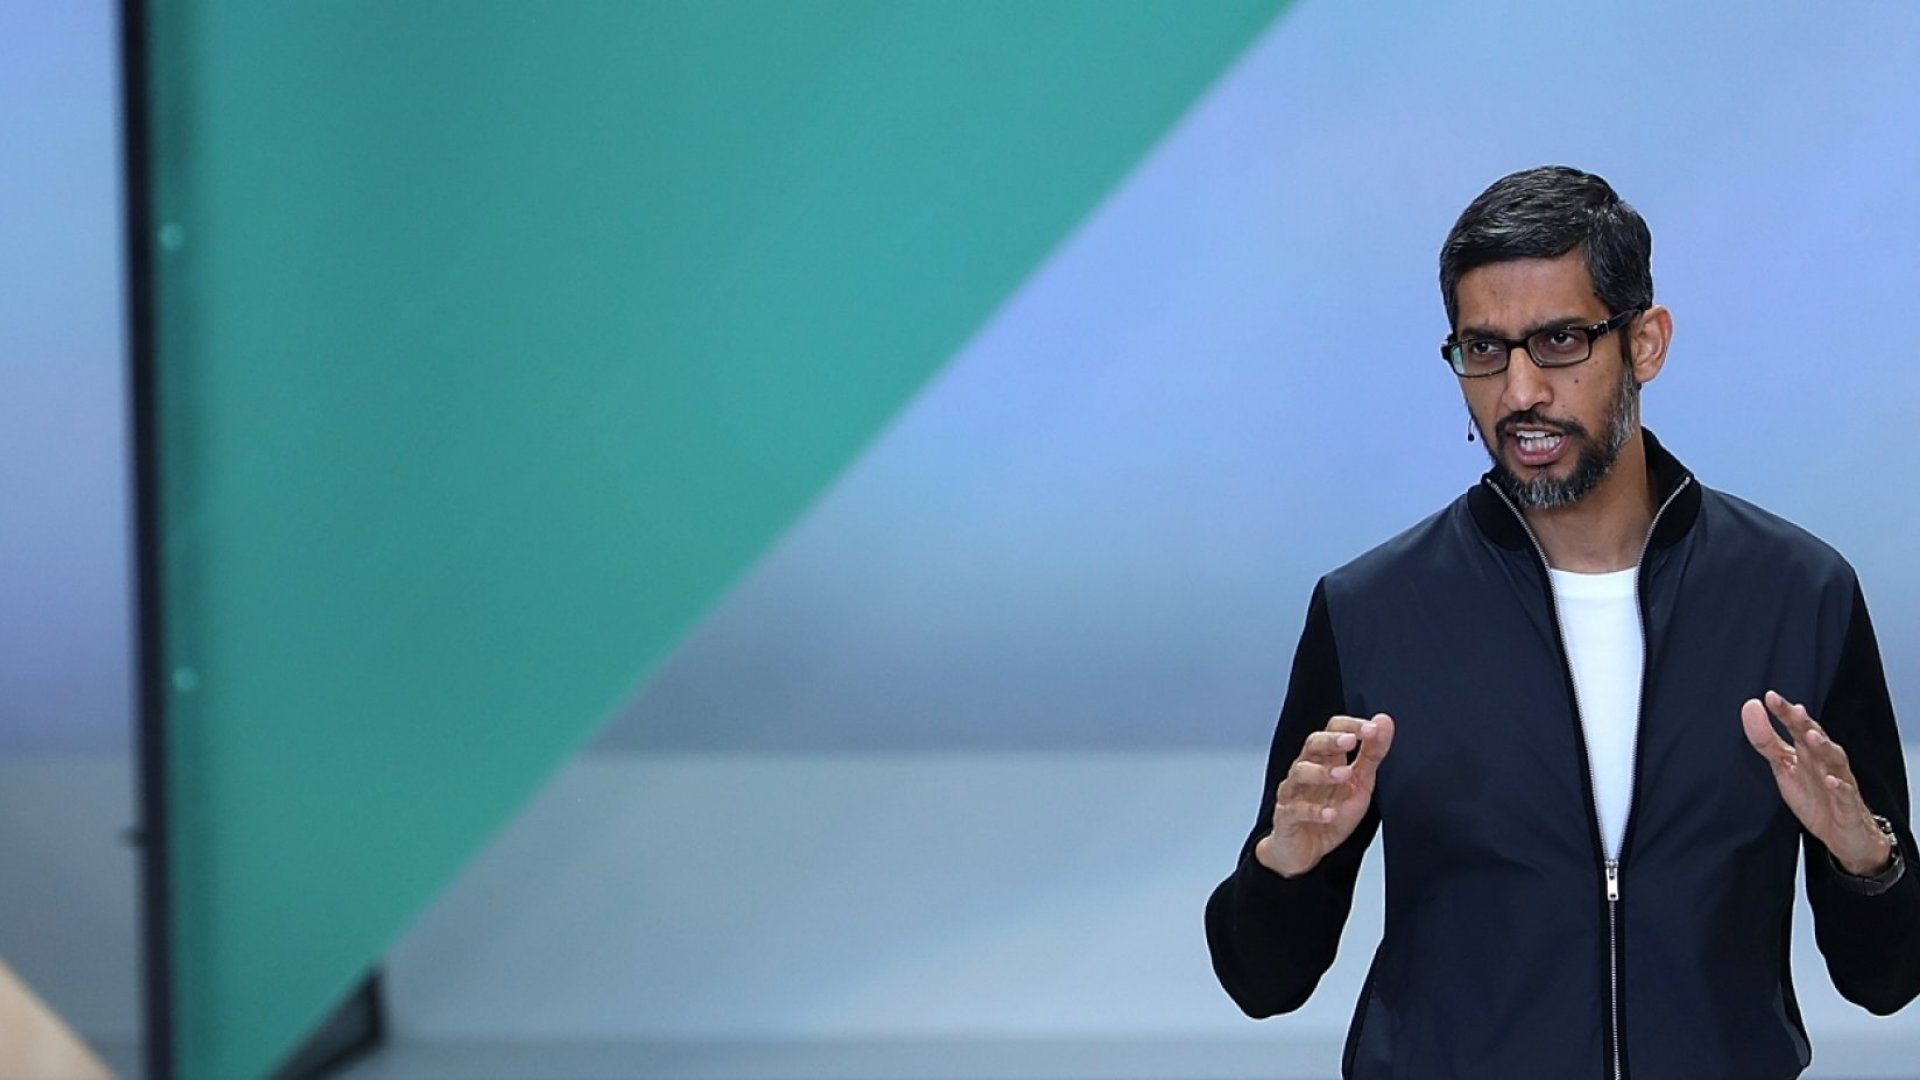 Google CEO Sundar Pichai delivers the keynote address at the Google I/O 2017 Conference at Shoreline Amphitheater on May 17, 2017